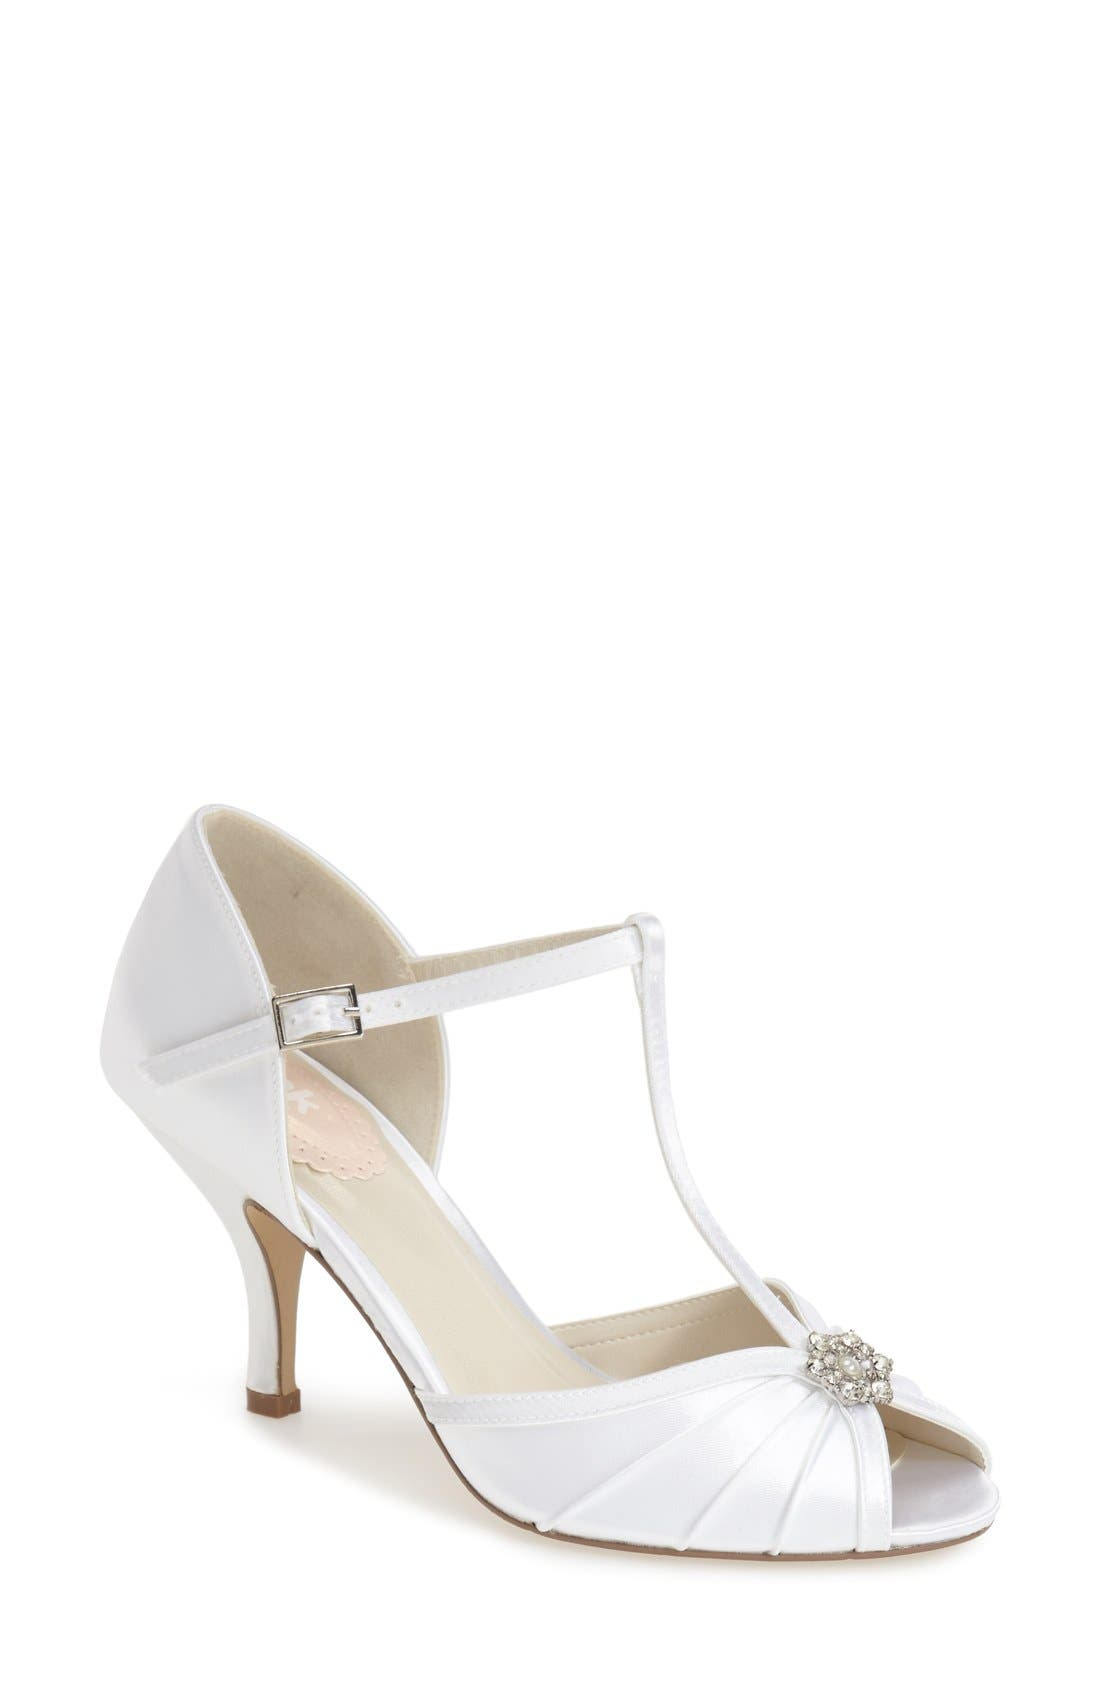 'Perfume' T-Strap Peep Toe Pump,                             Main thumbnail 1, color,                             WHITE SATIN